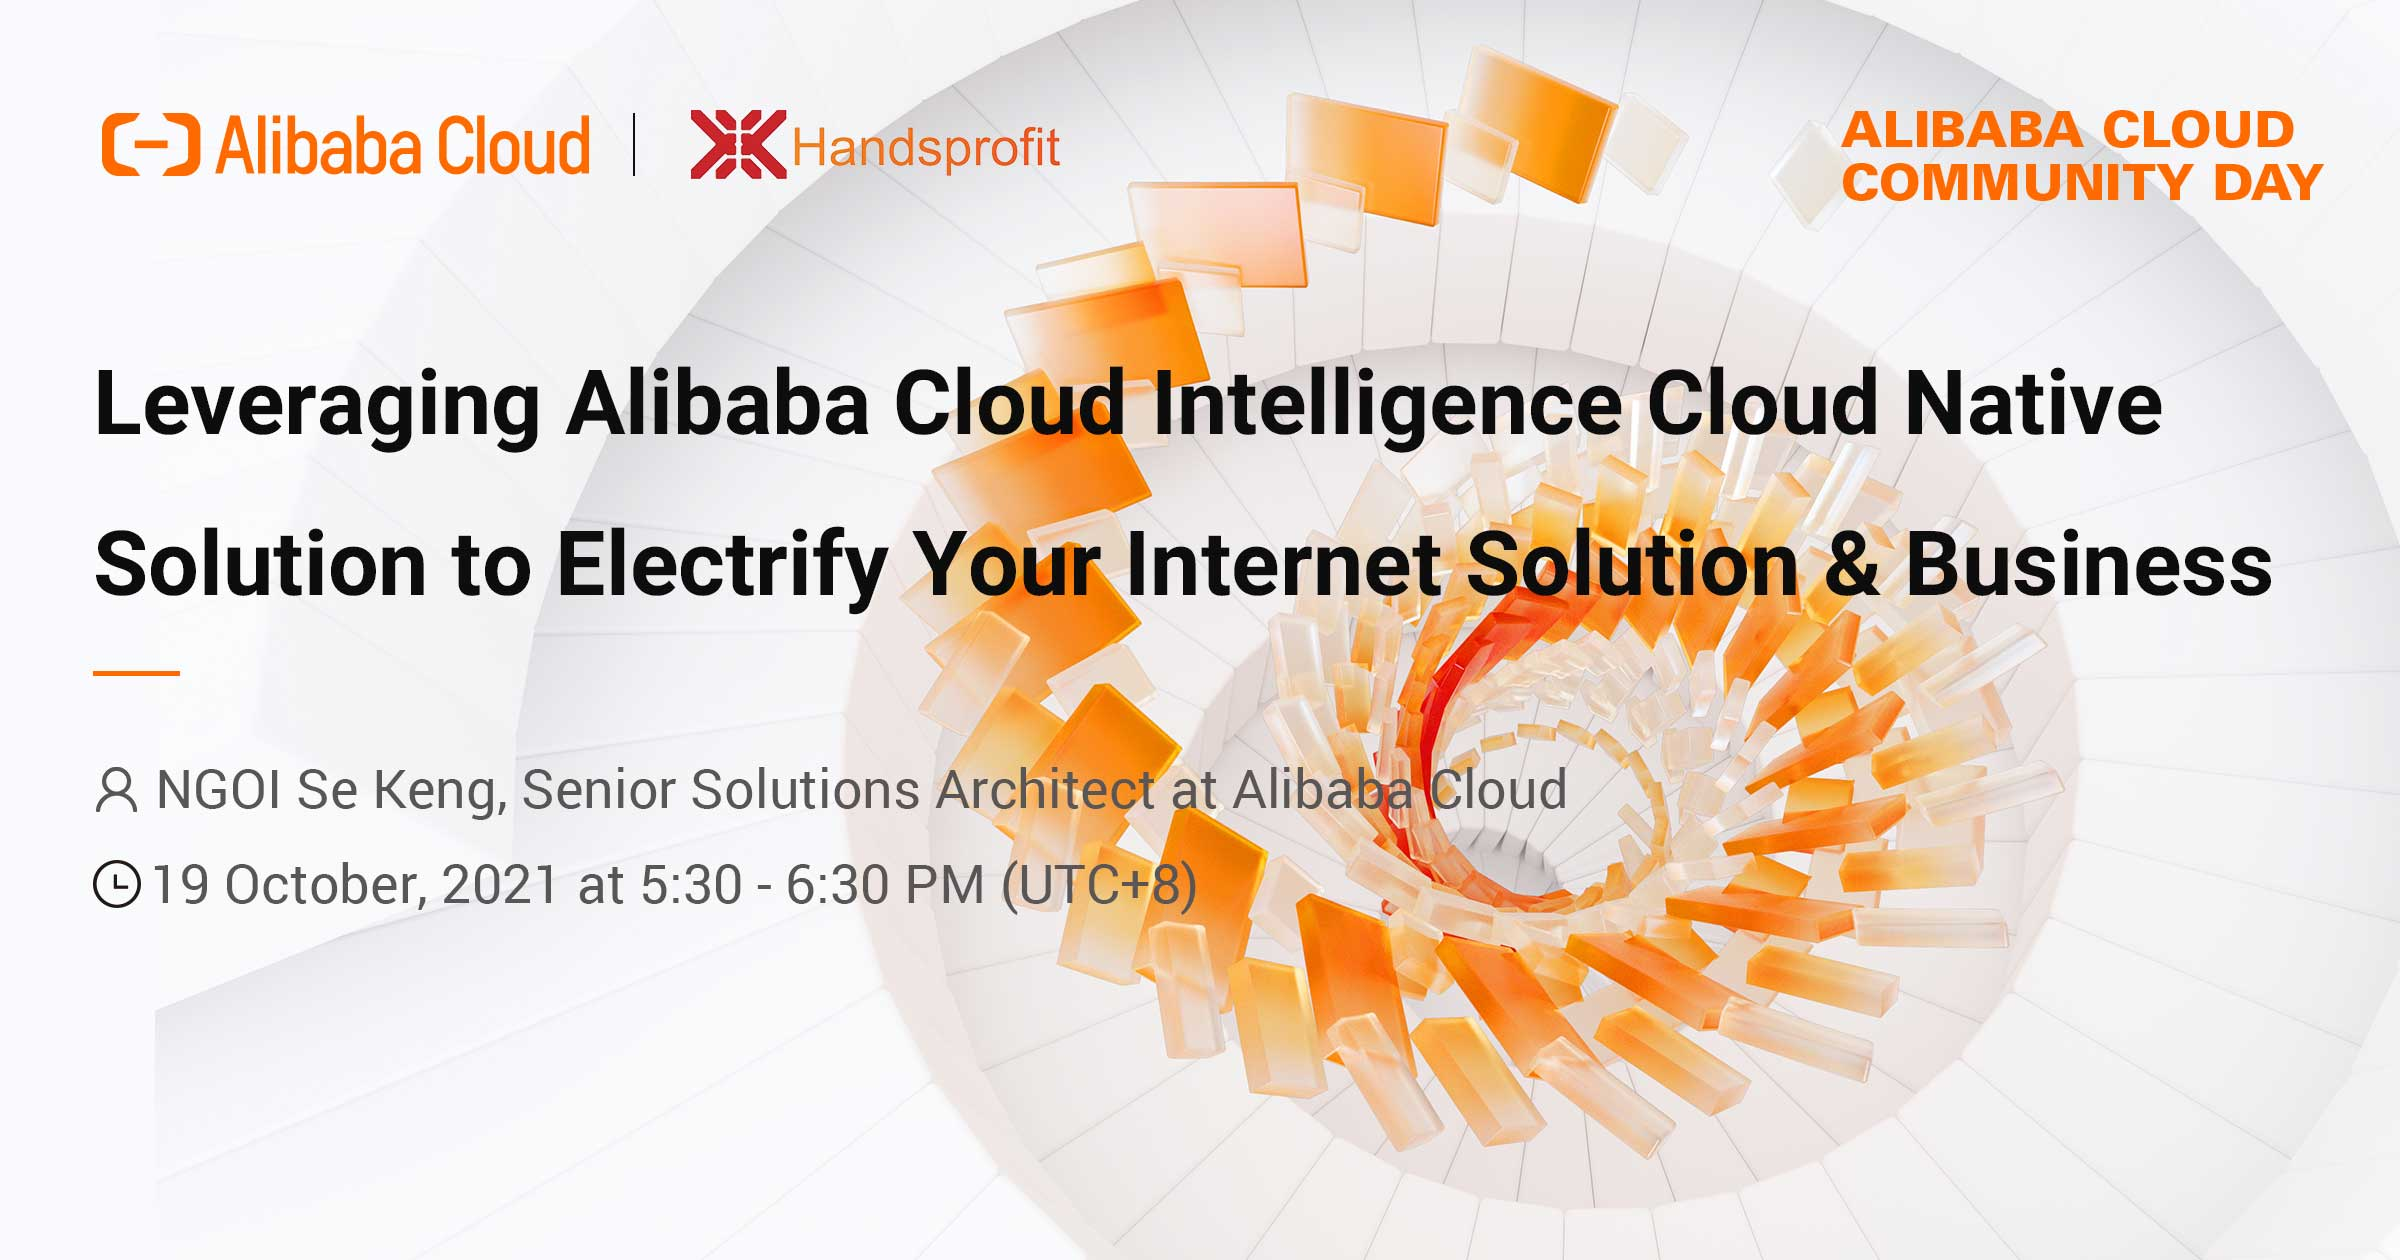 Alibaba Cloud Community Day: Leverage Cloud Native to Electrify Your Internet Solution & Business